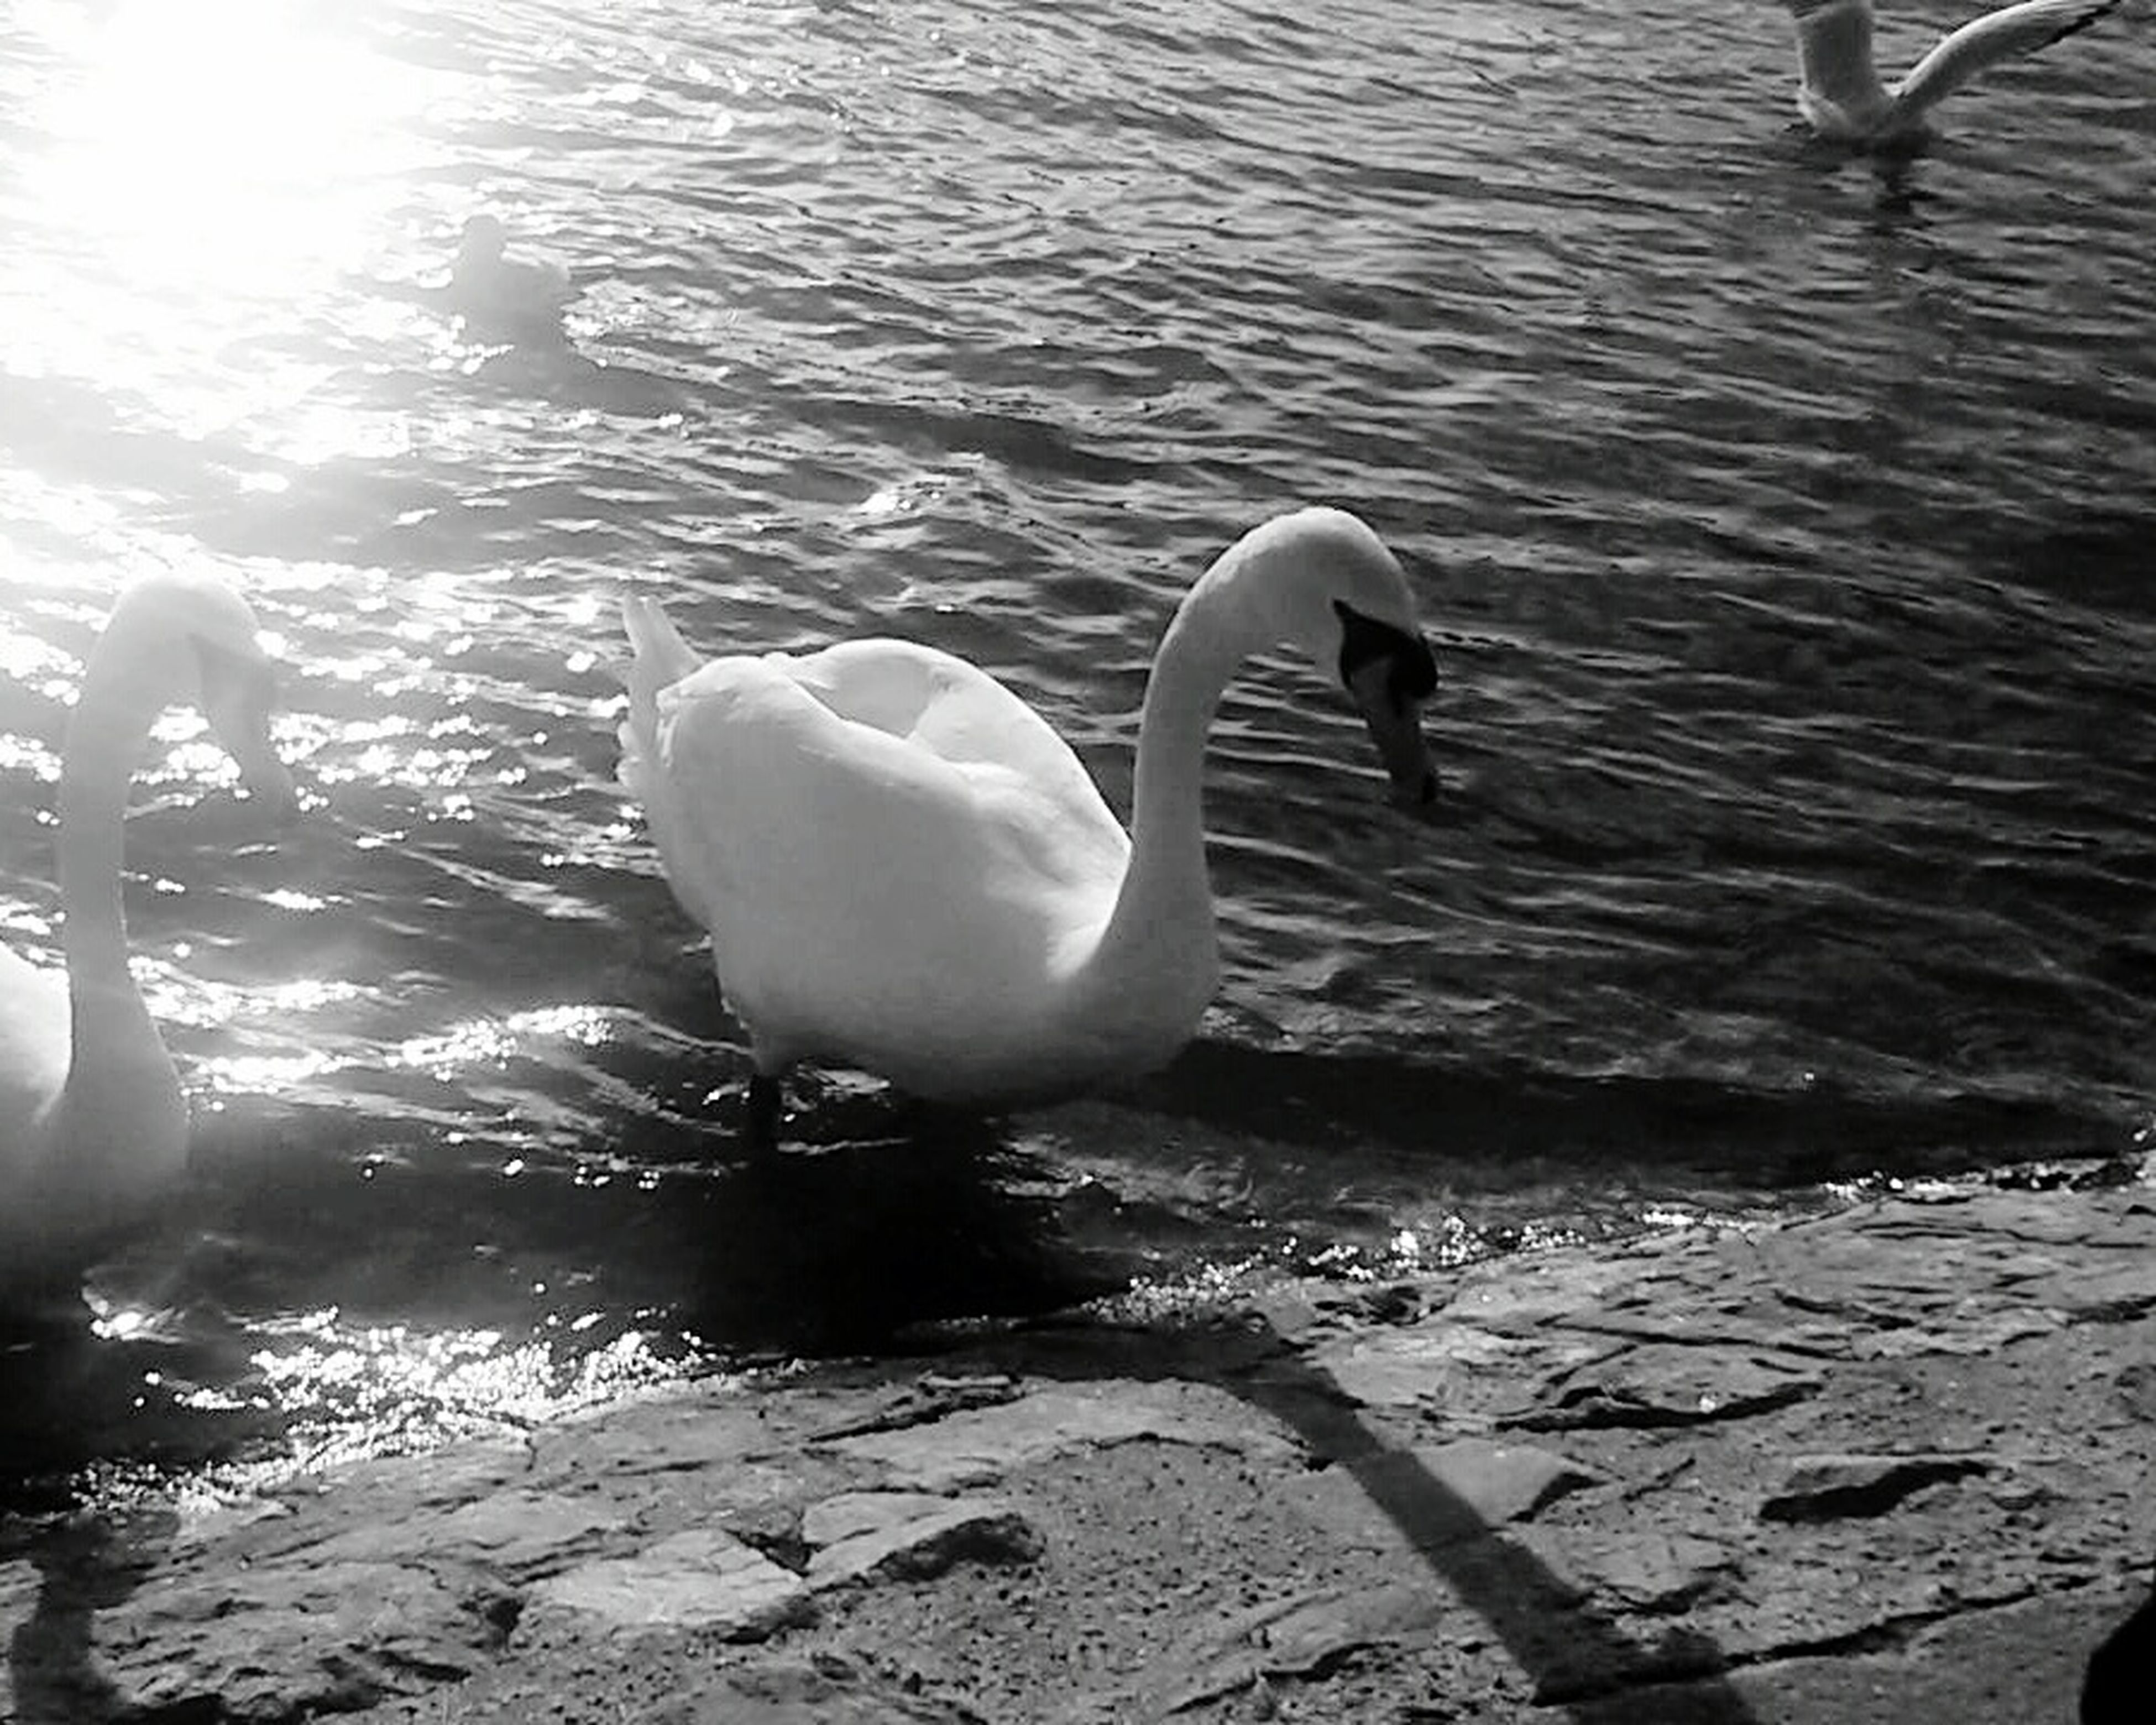 water, swan, bird, animal themes, lake, wildlife, swimming, animals in the wild, rippled, white color, reflection, high angle view, nature, water bird, sunlight, floating on water, beauty in nature, waterfront, outdoors, one animal